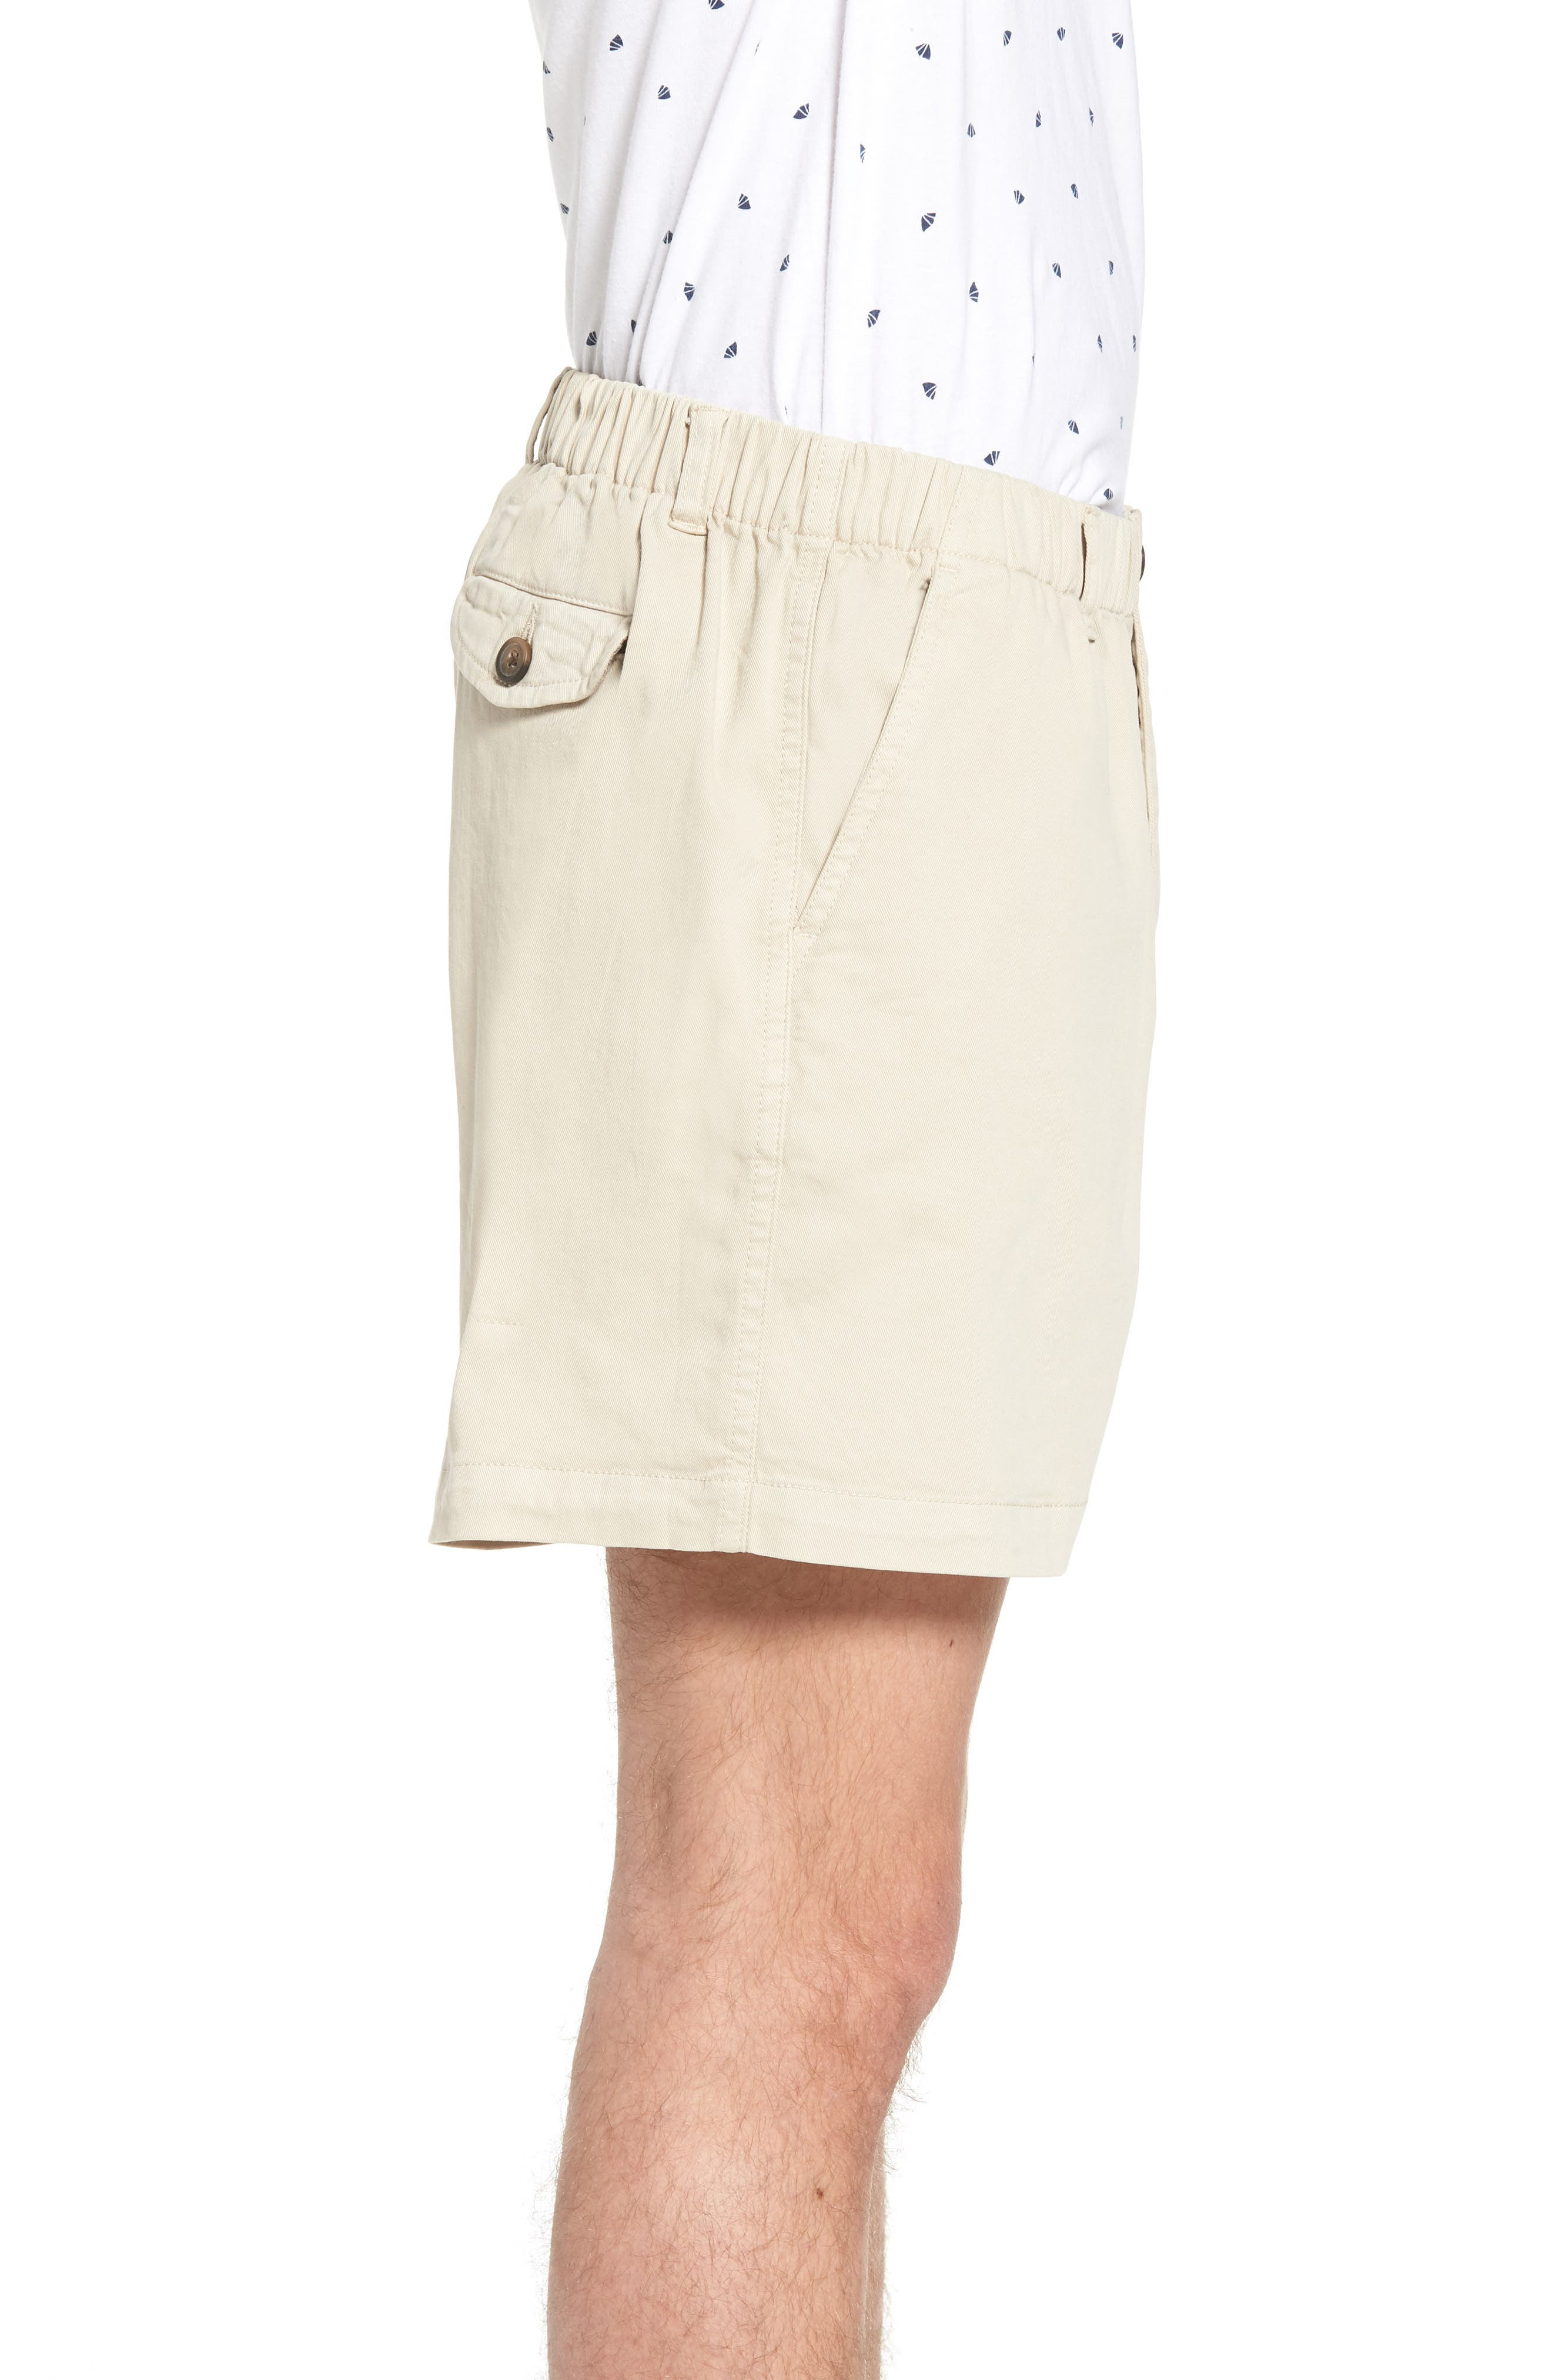 Snappers Elastic Waist 5.5 Inch Stretch Shorts,                             Alternate thumbnail 3, color,                             STONE